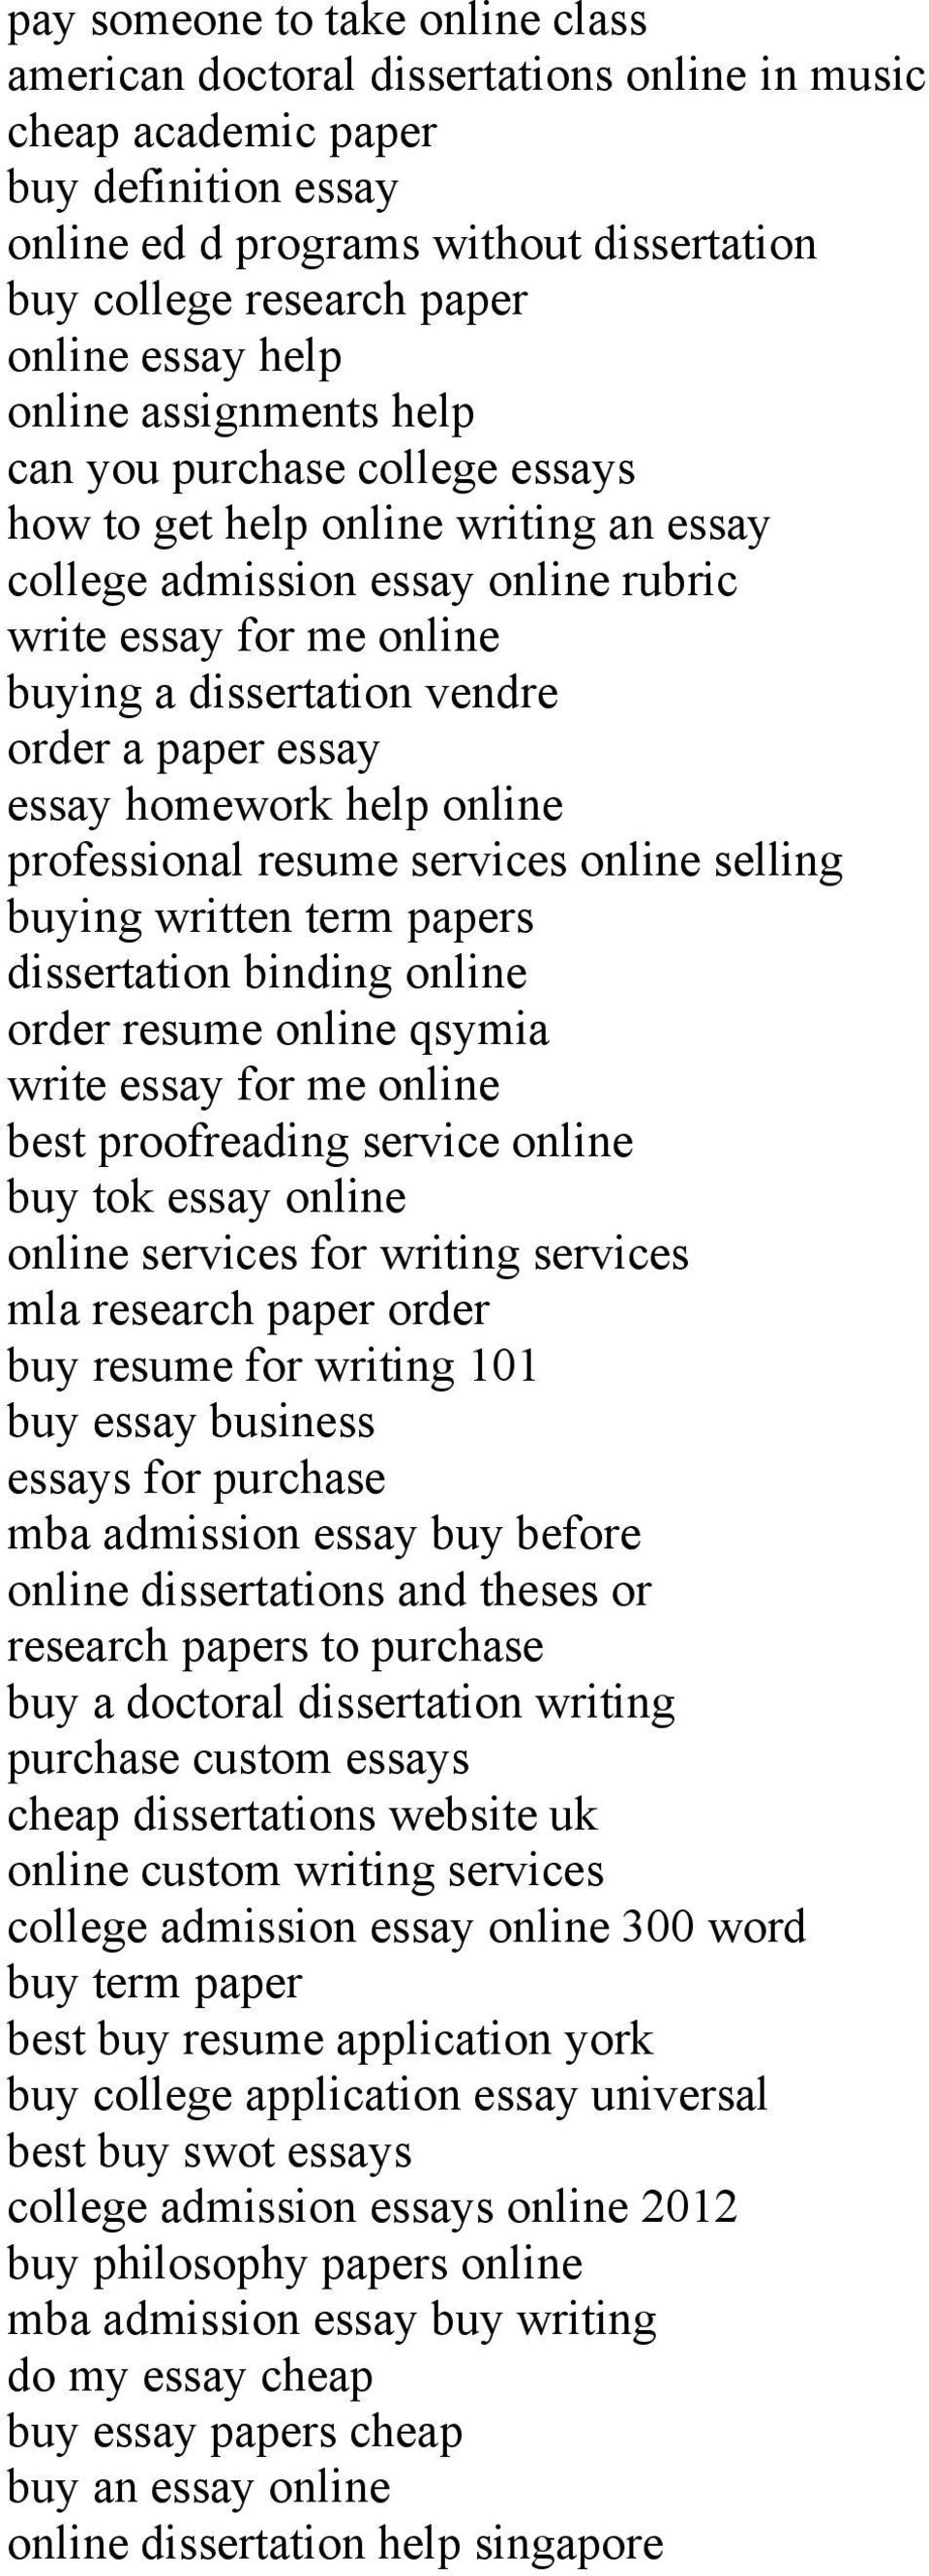 order a paper essay essay homework help online professional resume services online selling buying written term papers dissertation binding online order resume online qsymia write essay for me online